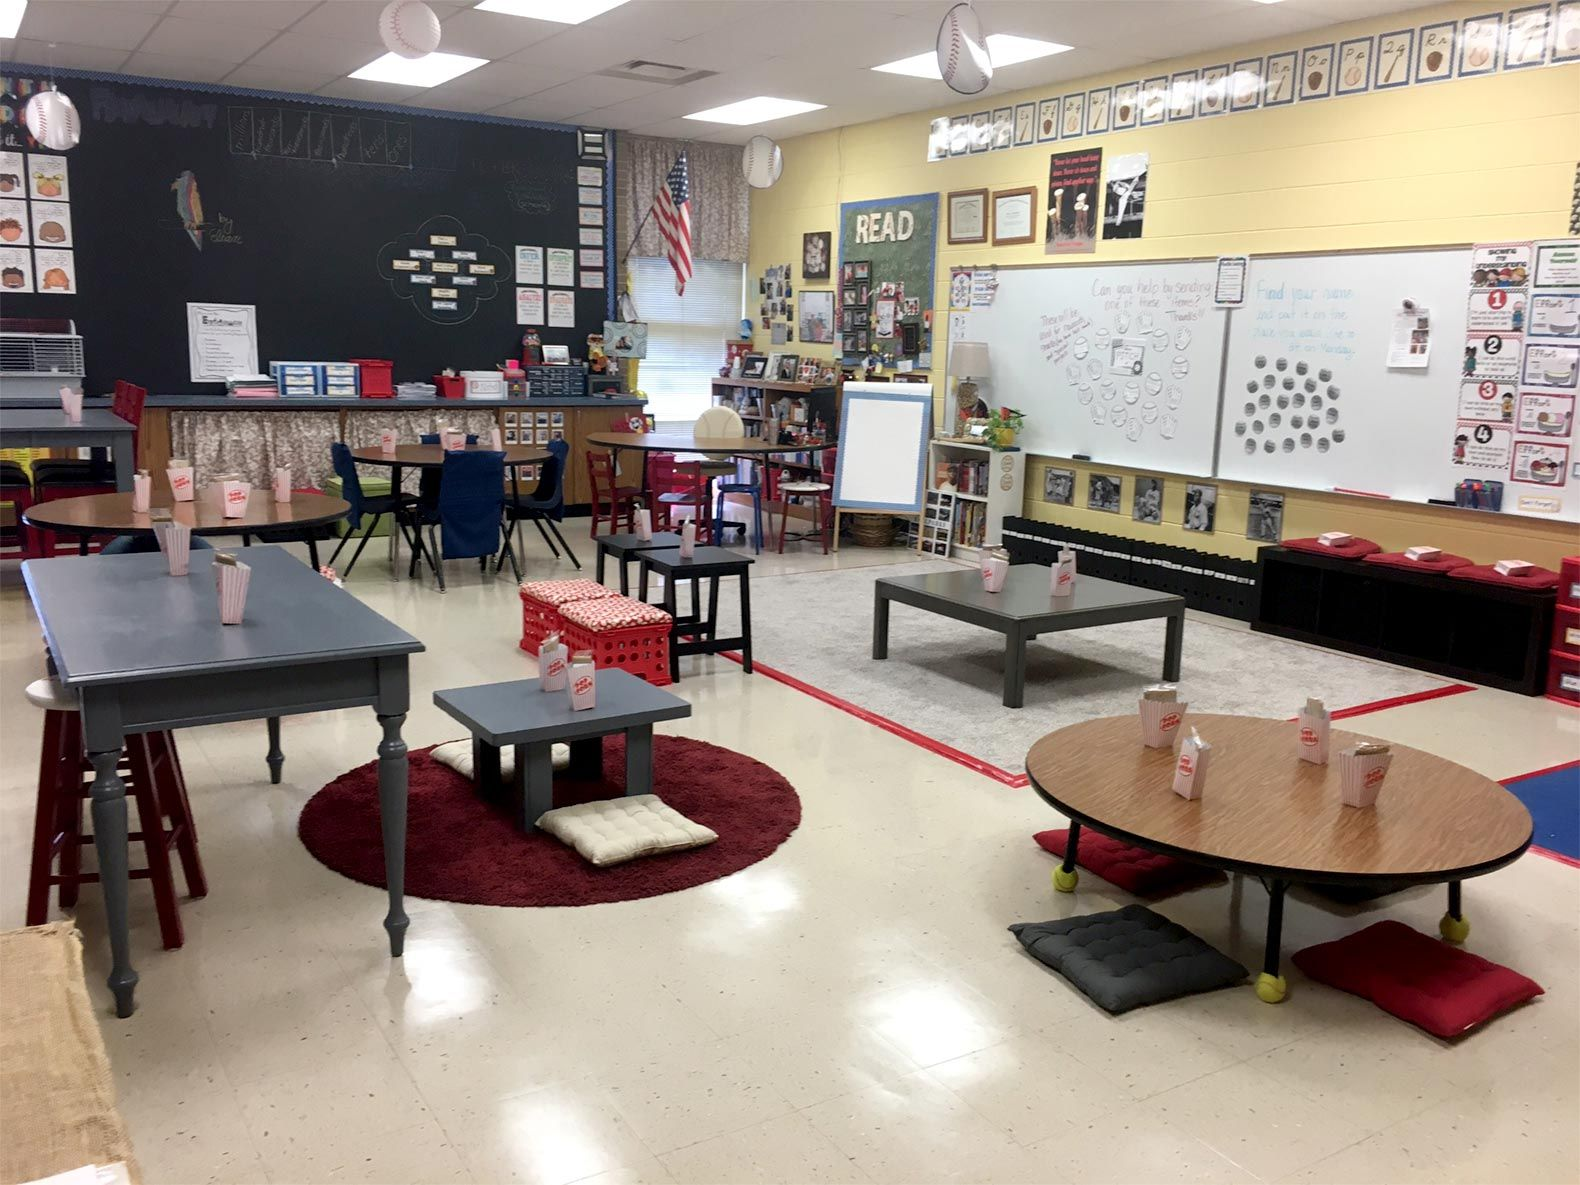 As a Title 1 school teacher, Mileham went the DIY route. Using yard sale and flea market purchases, she repainted three tables, made crate seats, and added cozy touches like cushions on a bench.